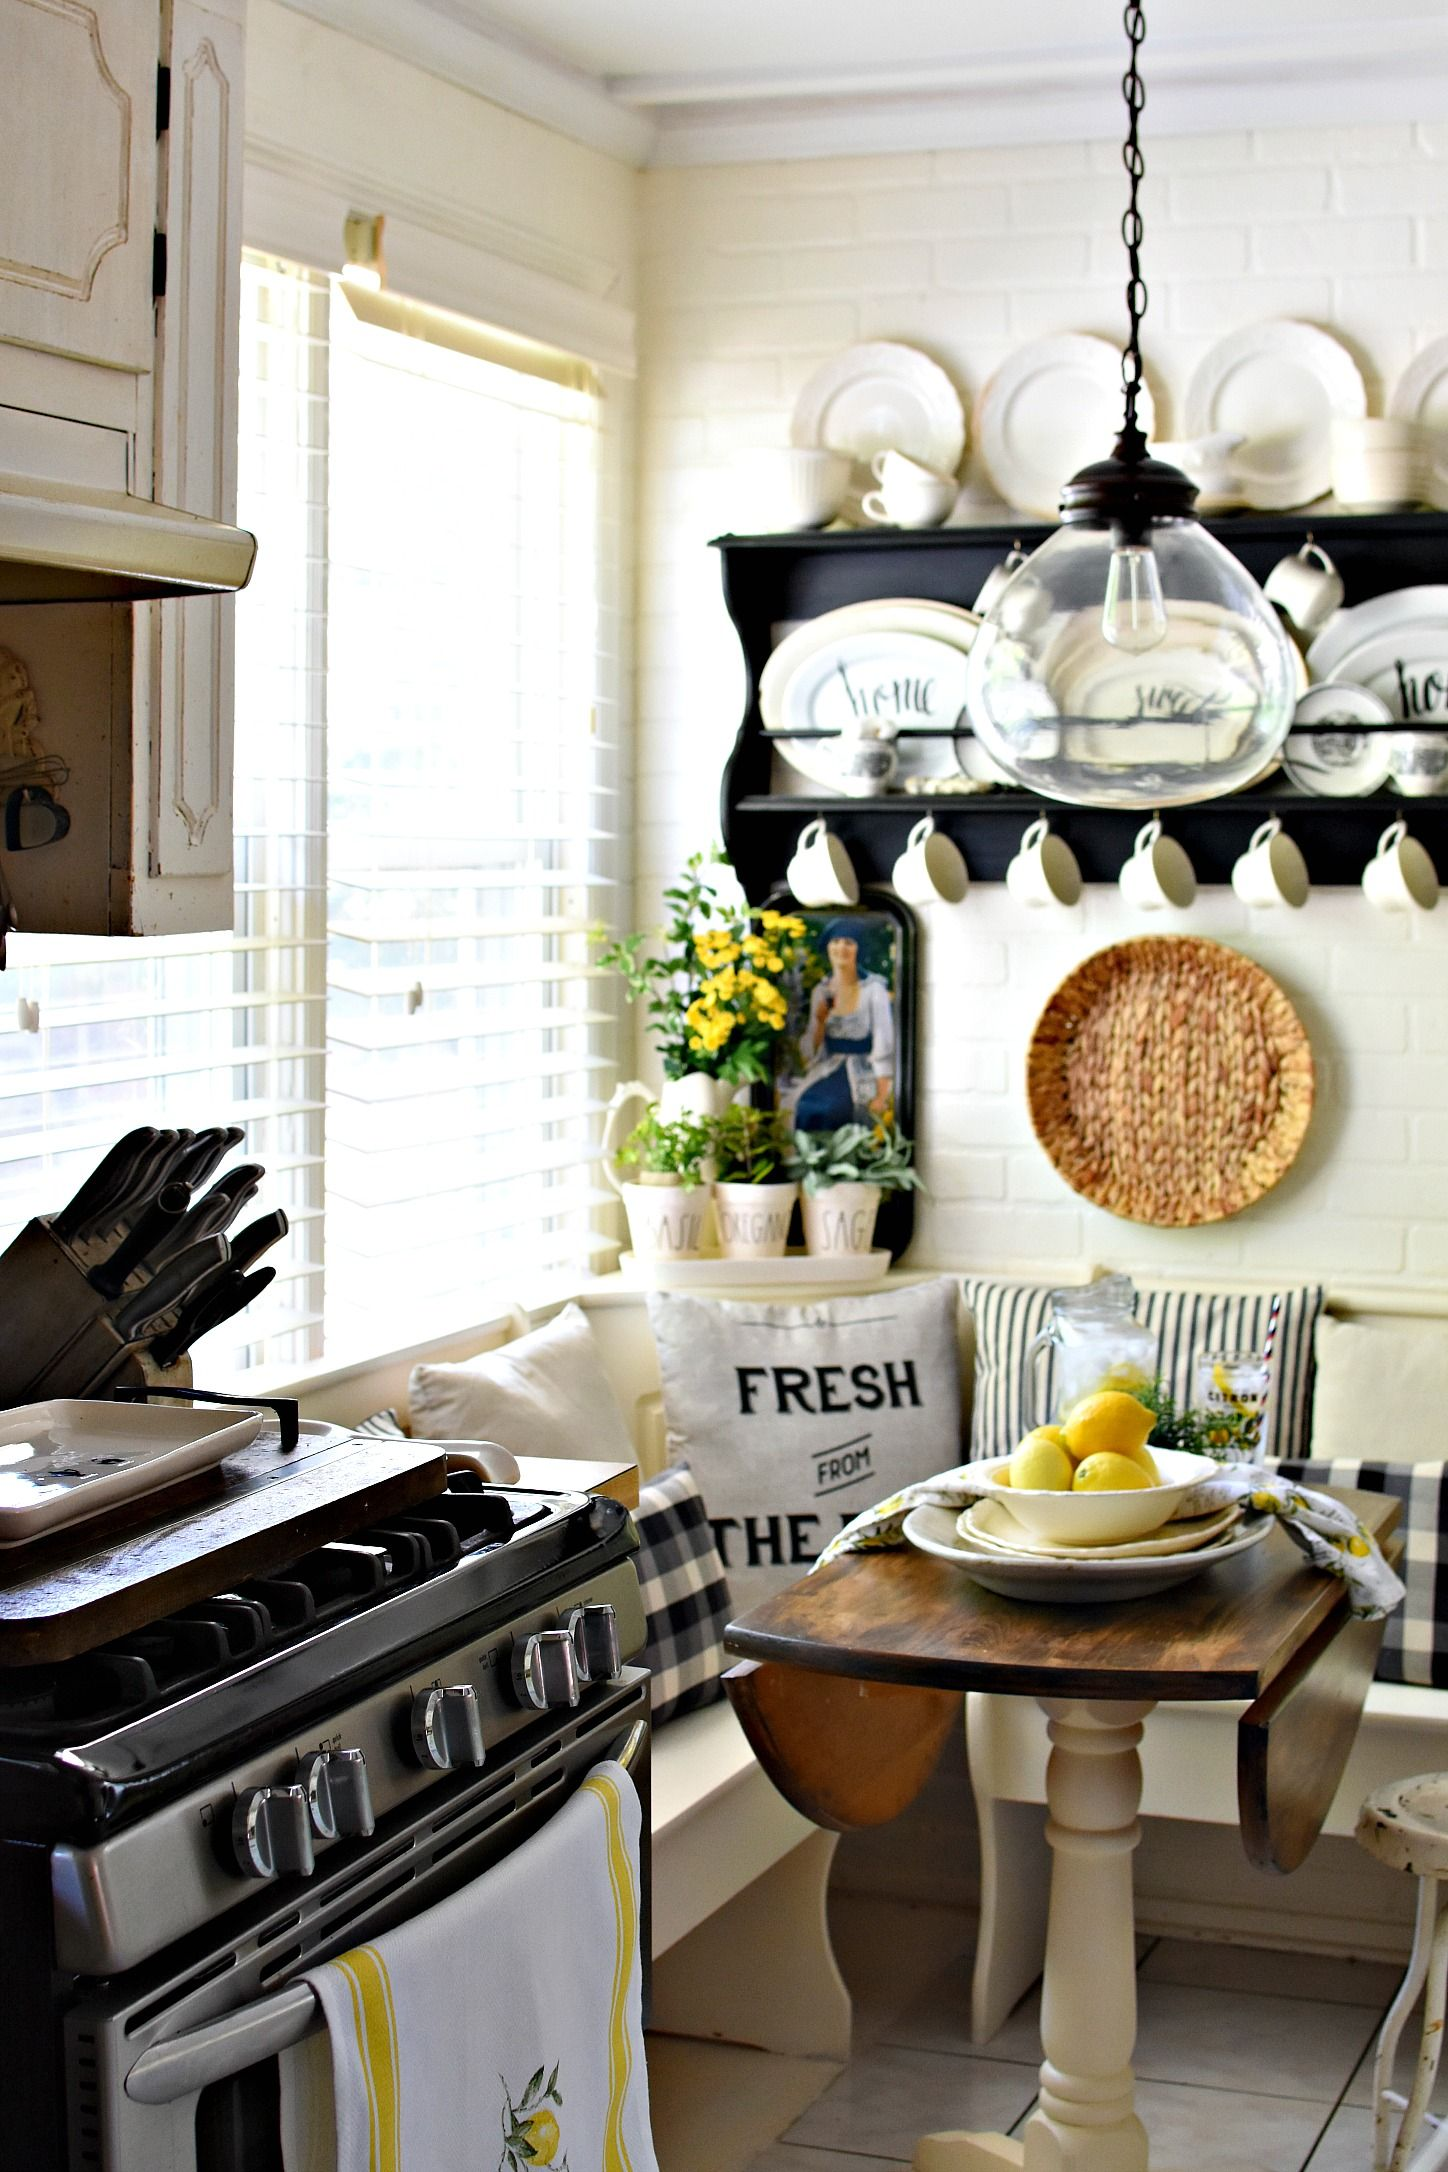 Farmhouse Kitchen Decorating Ideas For Summer Lemons Decorating With Lemons